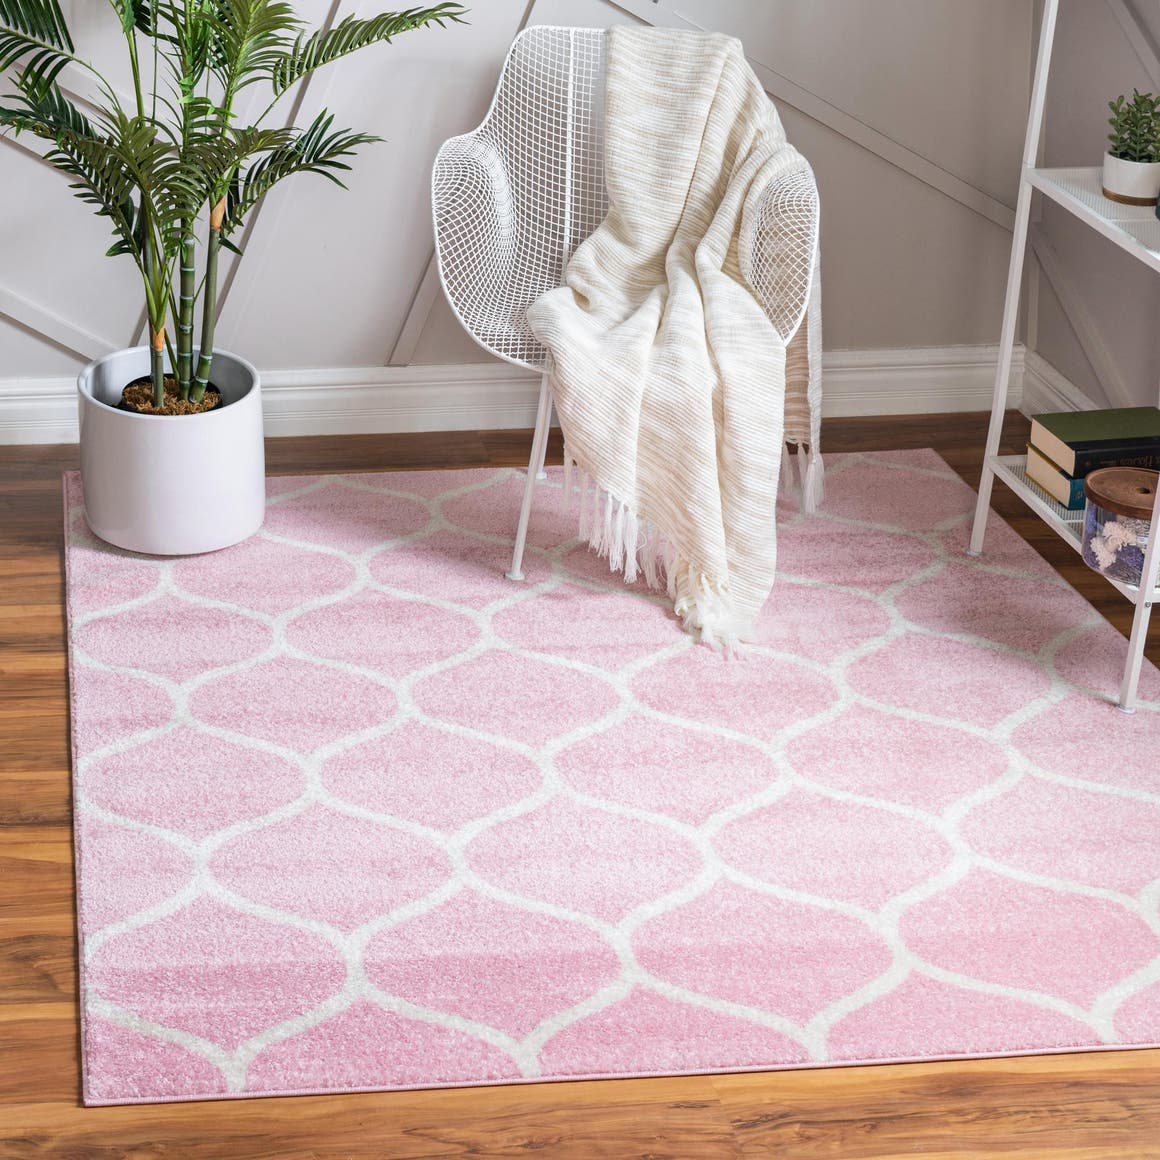 6' x 6' Trellis Frieze Square Rug main image